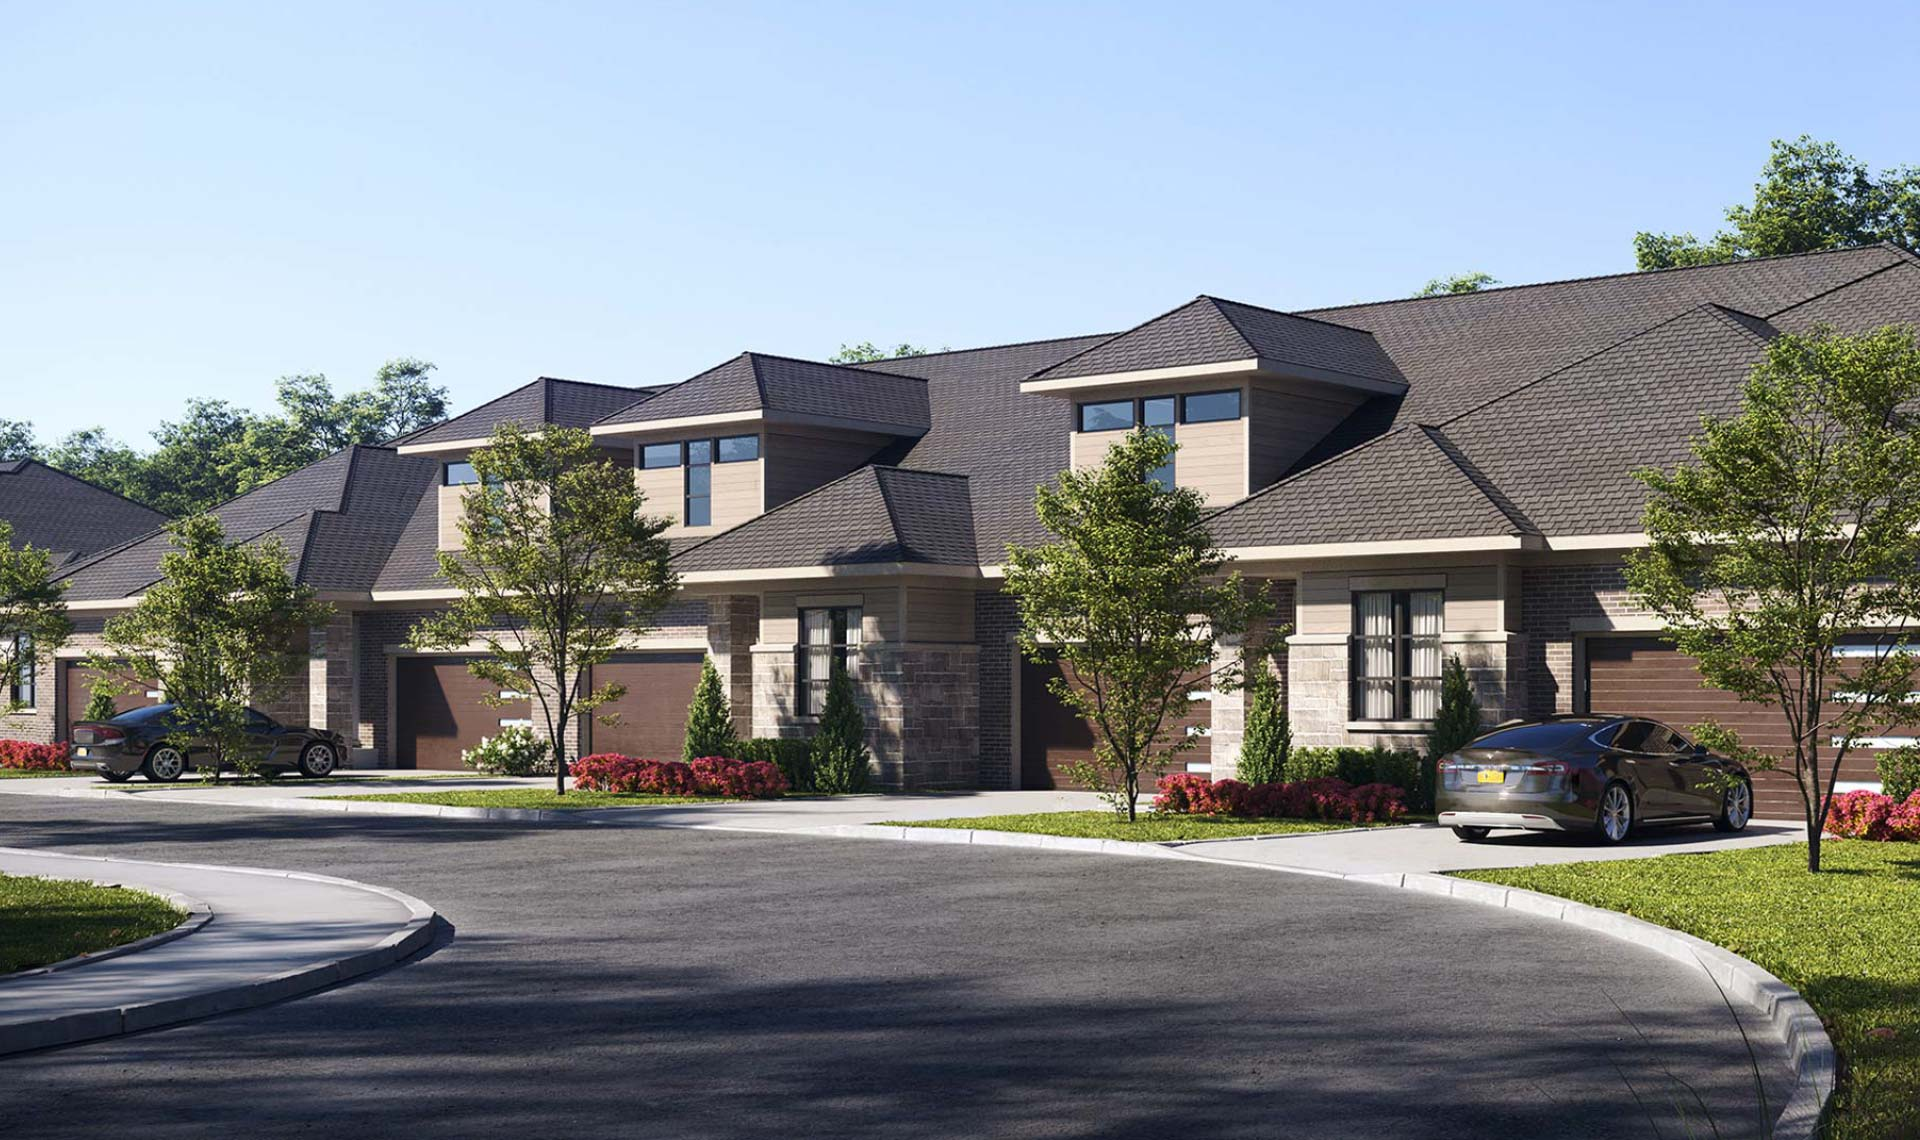 Hunter Pasteur Homes - Built to Inspire